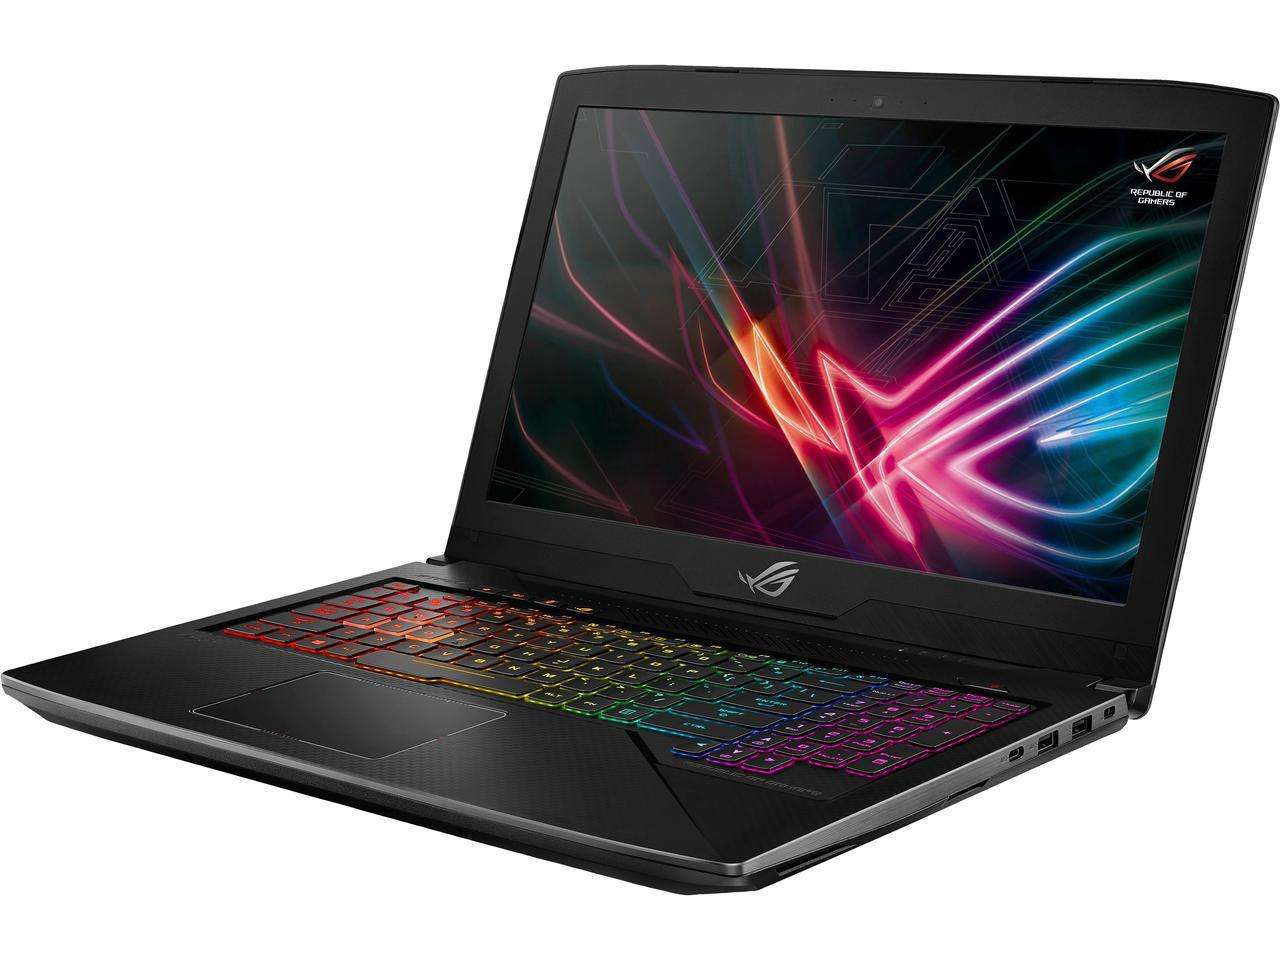 Avail Up To 450 In Discount For Gigabyte Msi And Other Laptops From Newegg